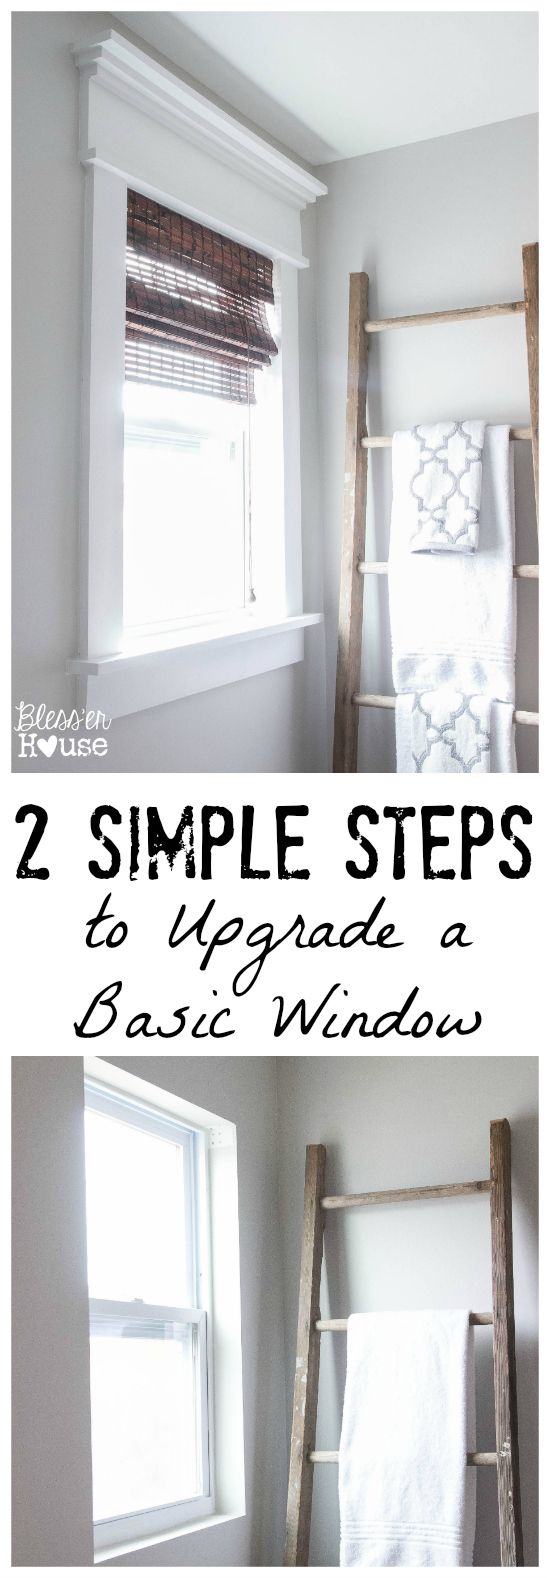 2 Simple Steps To Upgrade A Basic Window Bless Er House